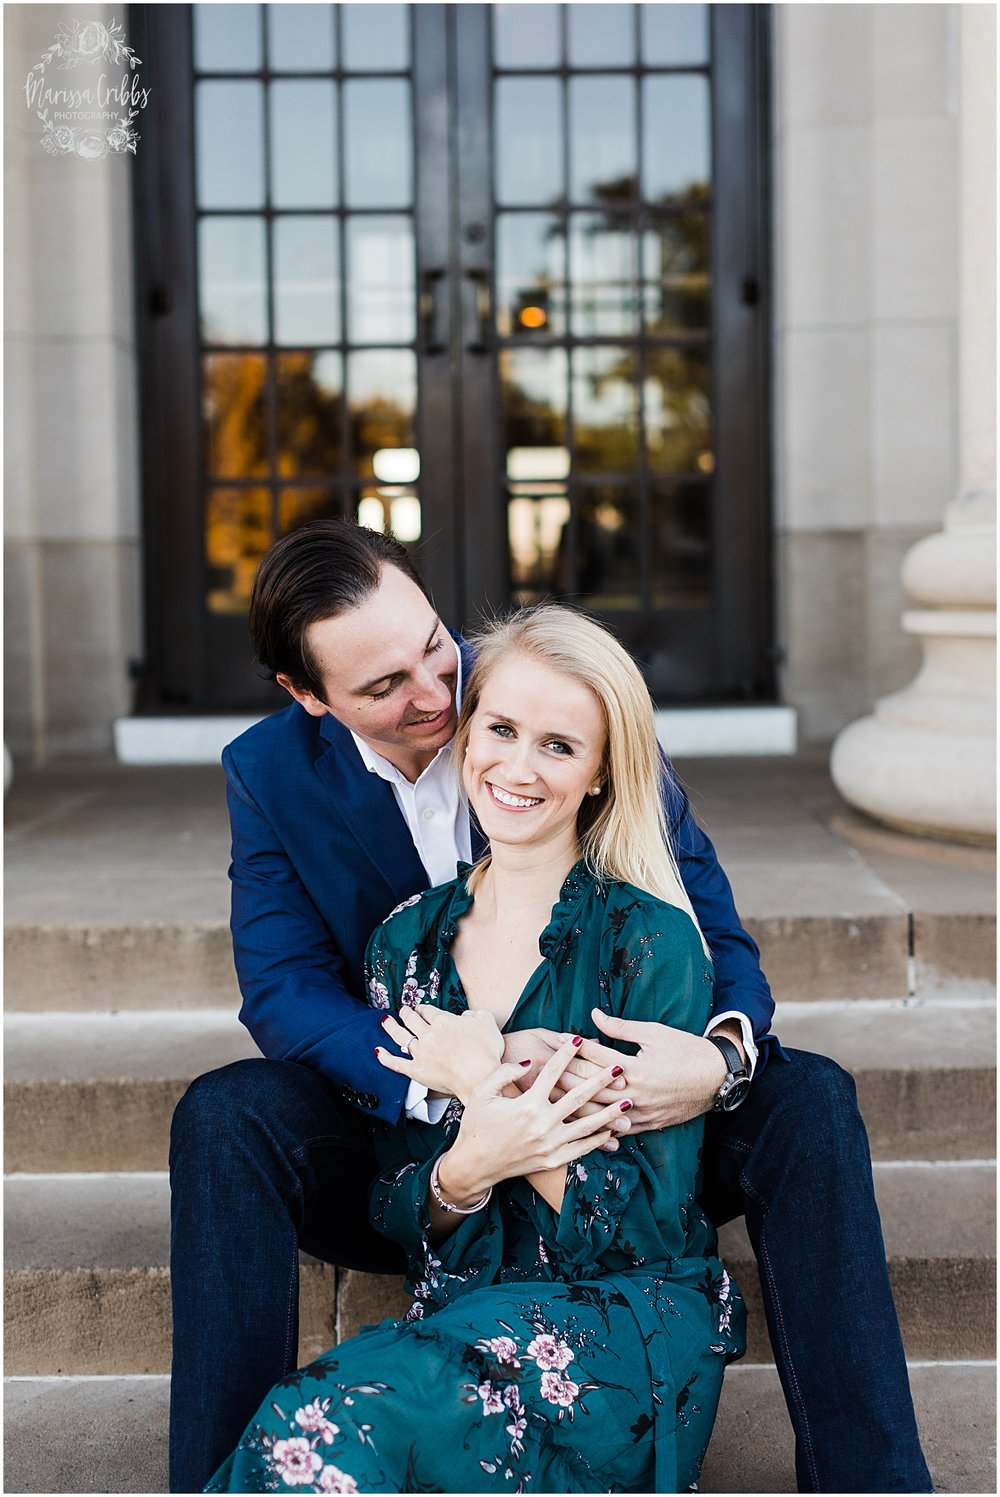 HALEY & CHASE ENGAGED LOOSE PARK & NELSON ATKINS | FALL ENGAGEMENT PHOTOS | MARISSA CRIBBS PHOTOGRAPHY_6856.jpg